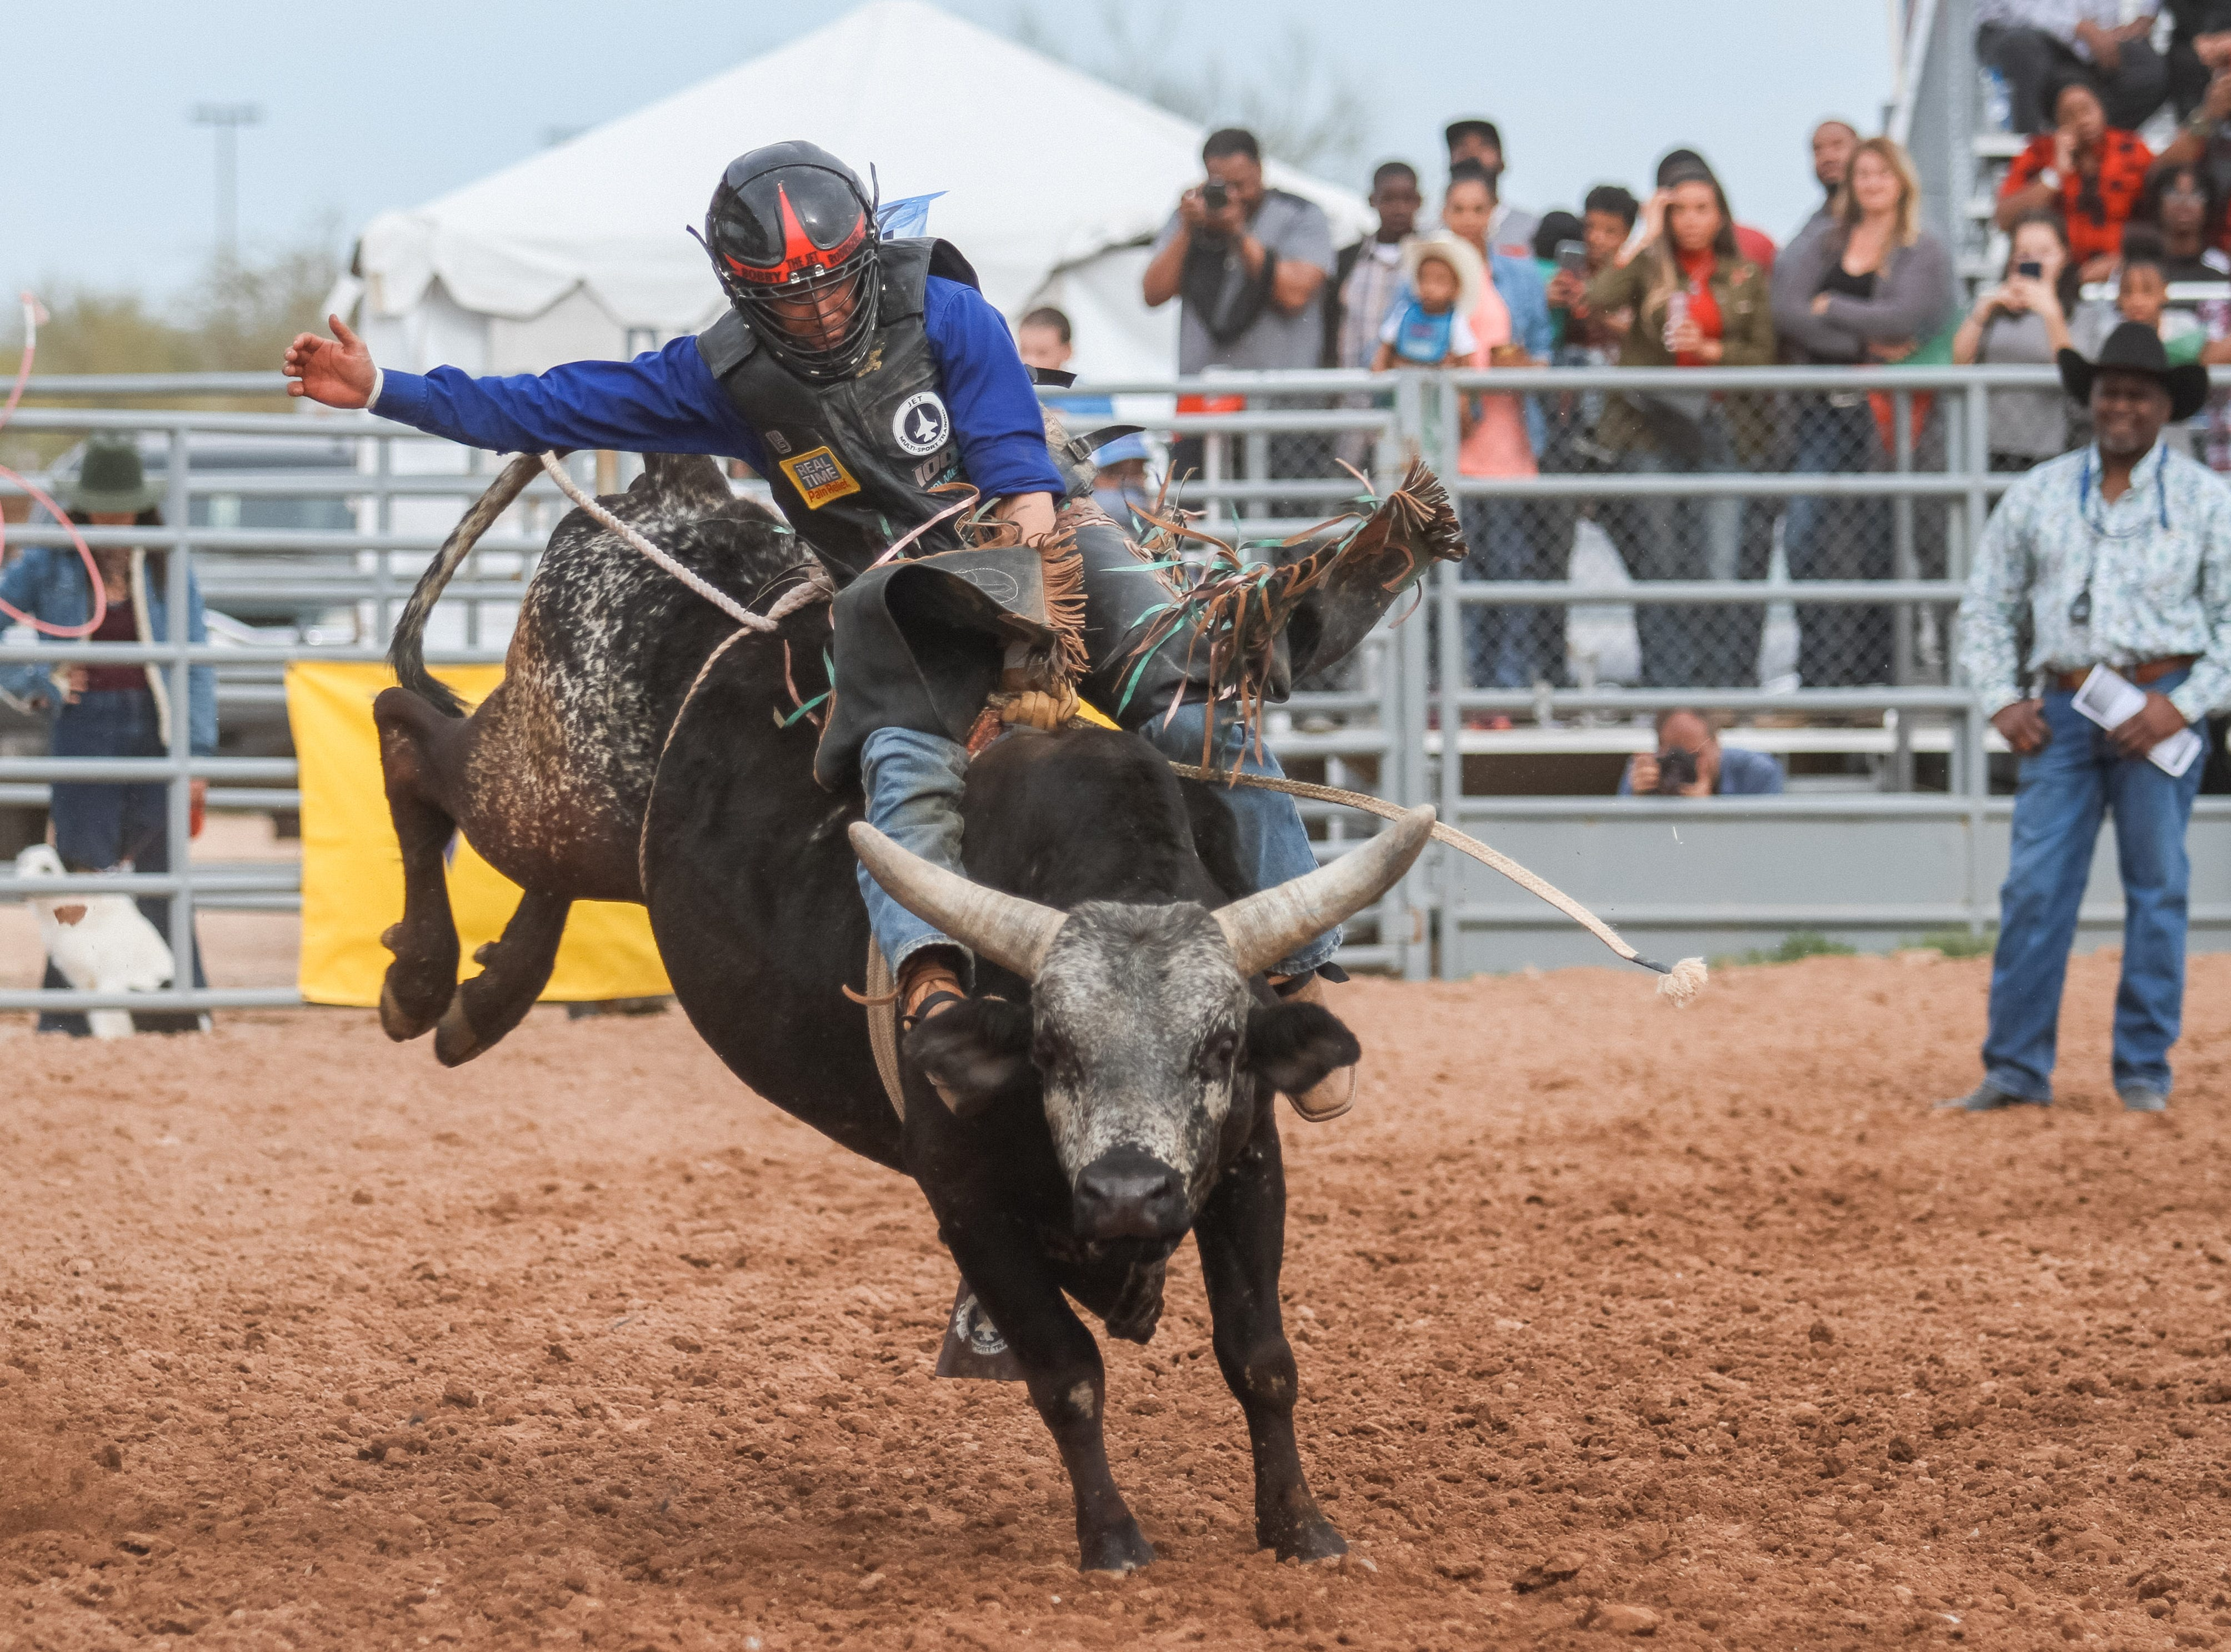 """Bobby """"The Jet"""" Rodriguez rides a bucking bull at the Arizona Black Rodeo in Chandler, Arizona on Saturday, March 9, 2019."""